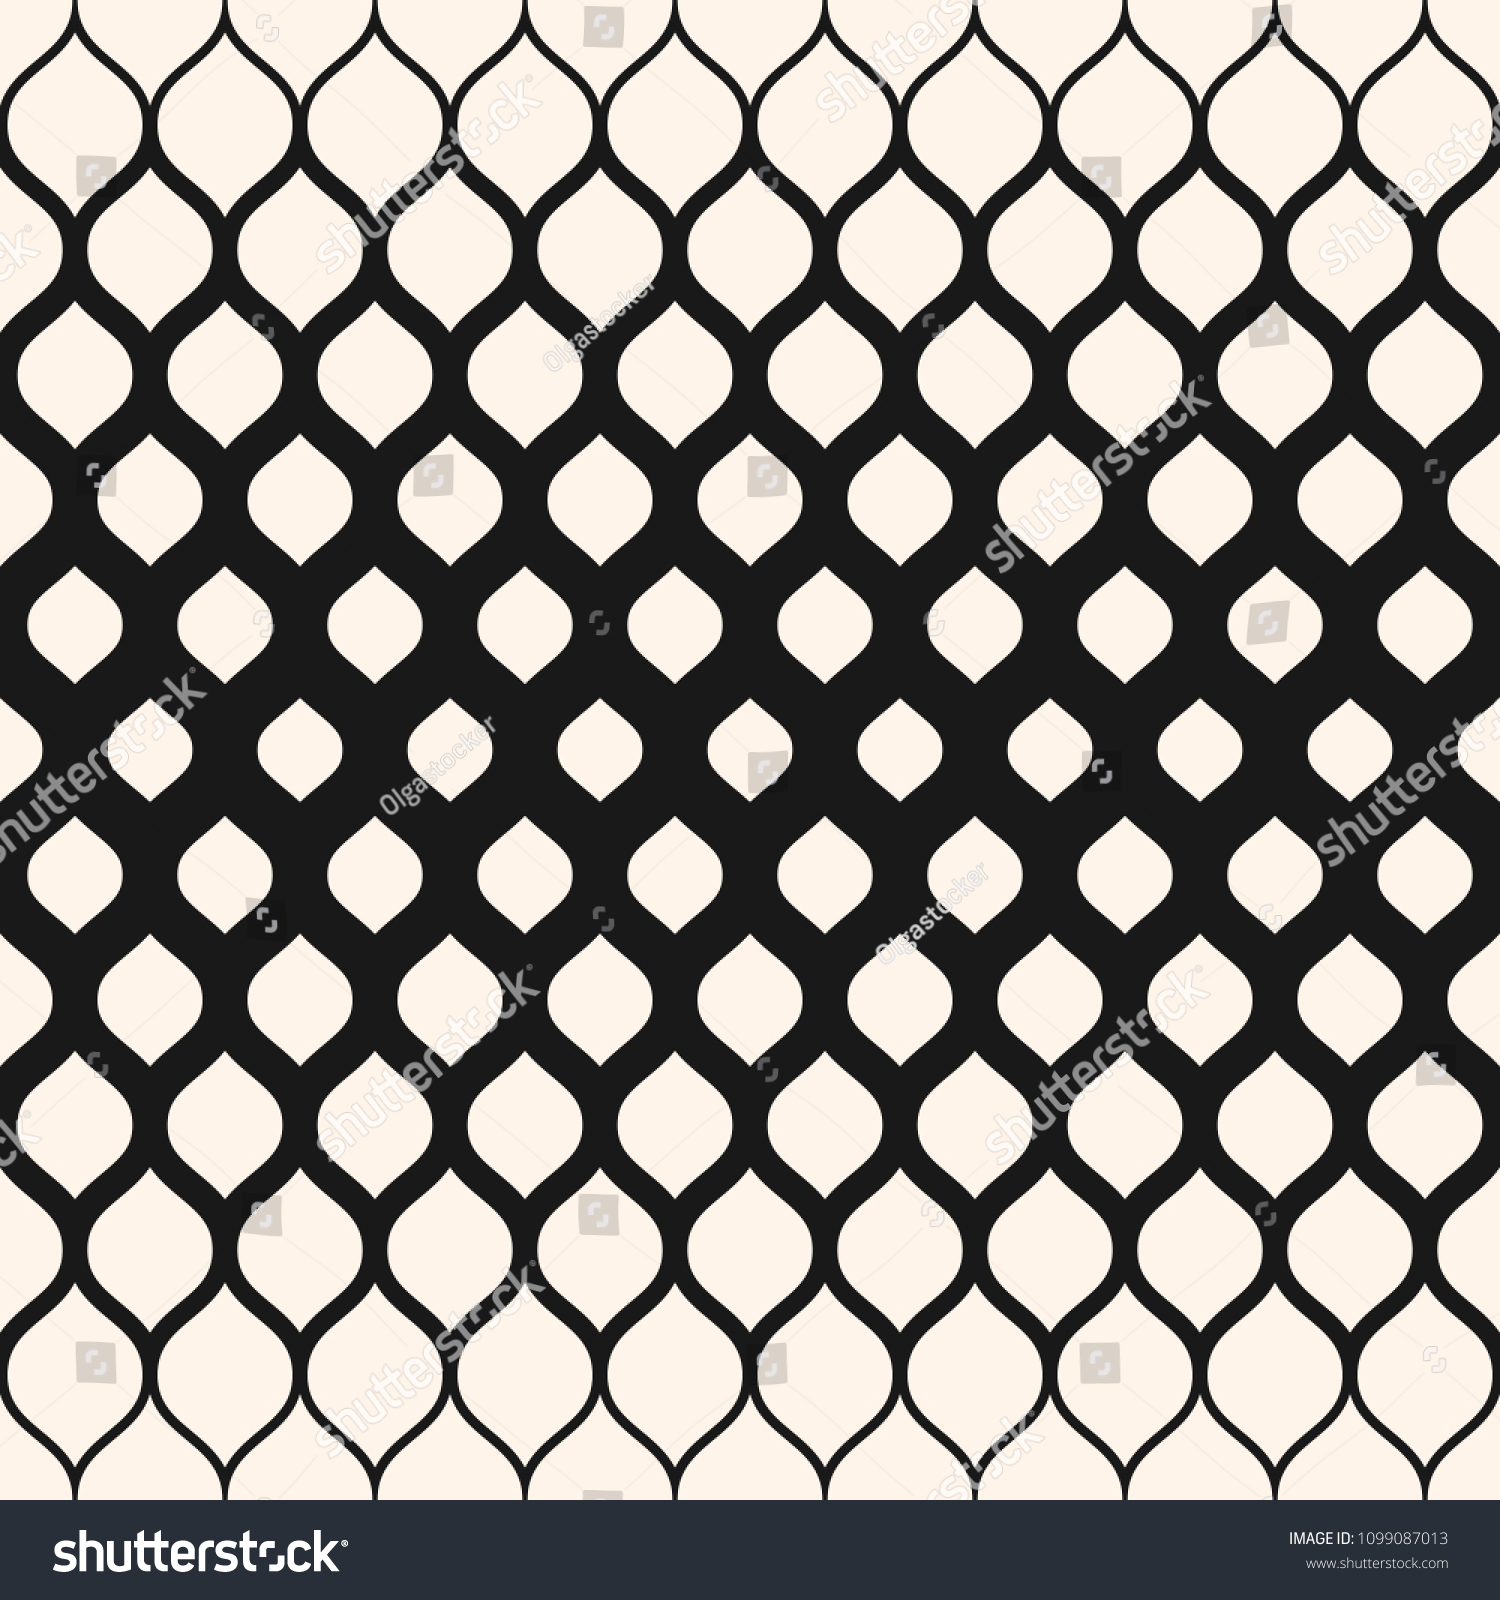 Raster Seamless Pattern Monochrome Background With Halftone Transition Effect, Vertical